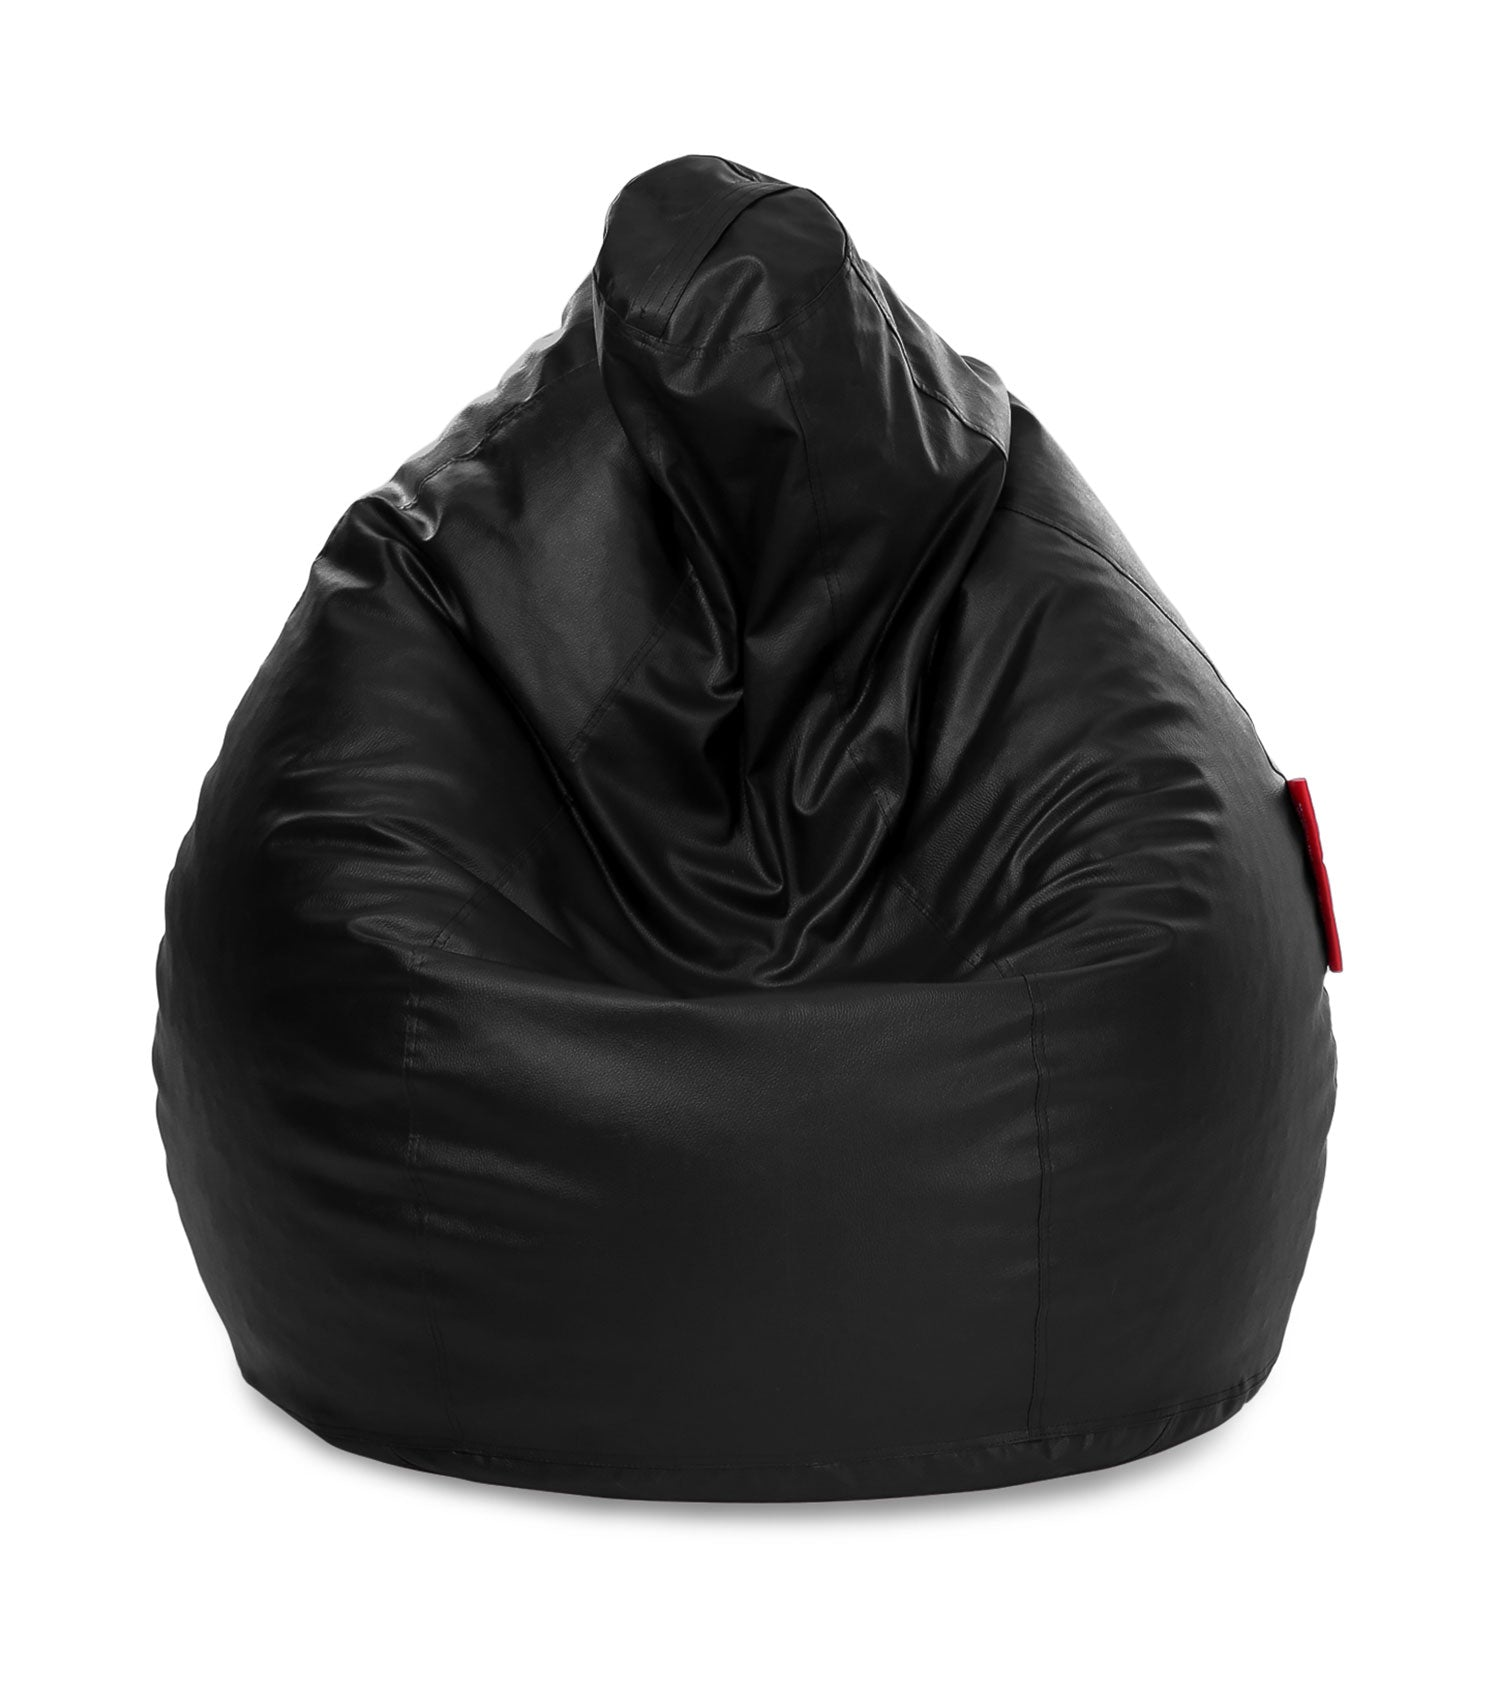 Peachy Black Xxxl Sac Bean Bag With Fillers Bean Bag Gamerscity Chair Design For Home Gamerscityorg